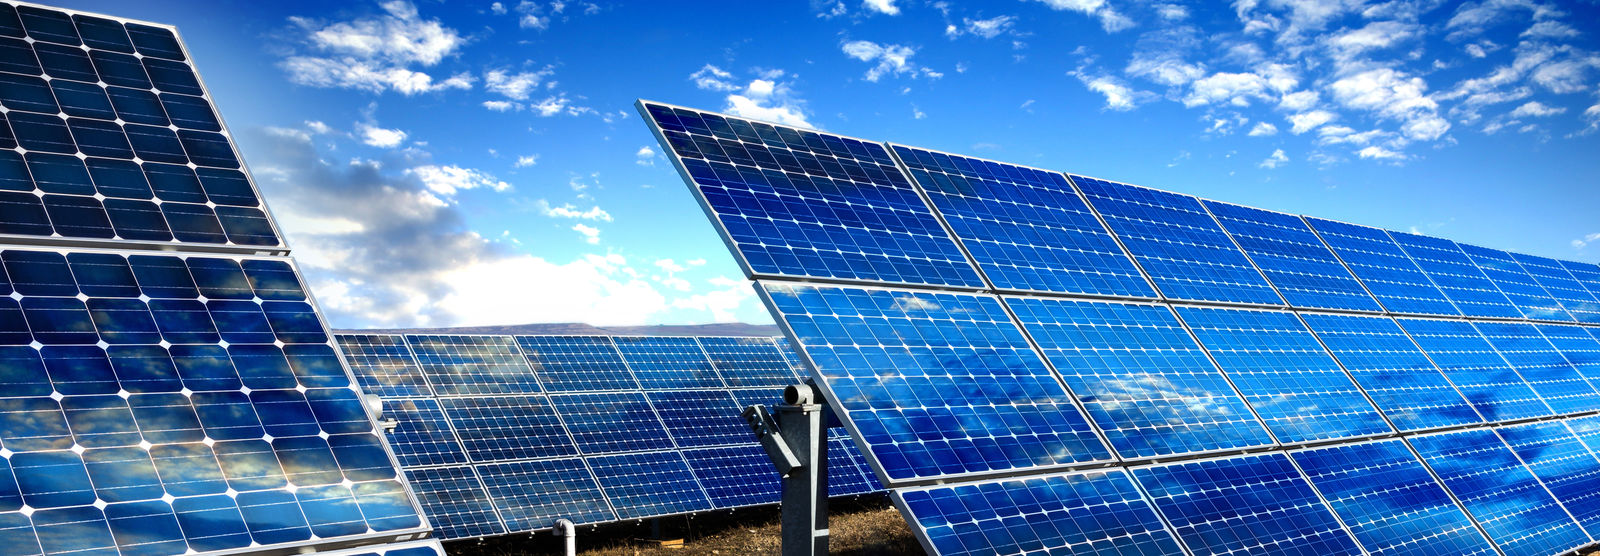 Solar Panels collecting energy from sun